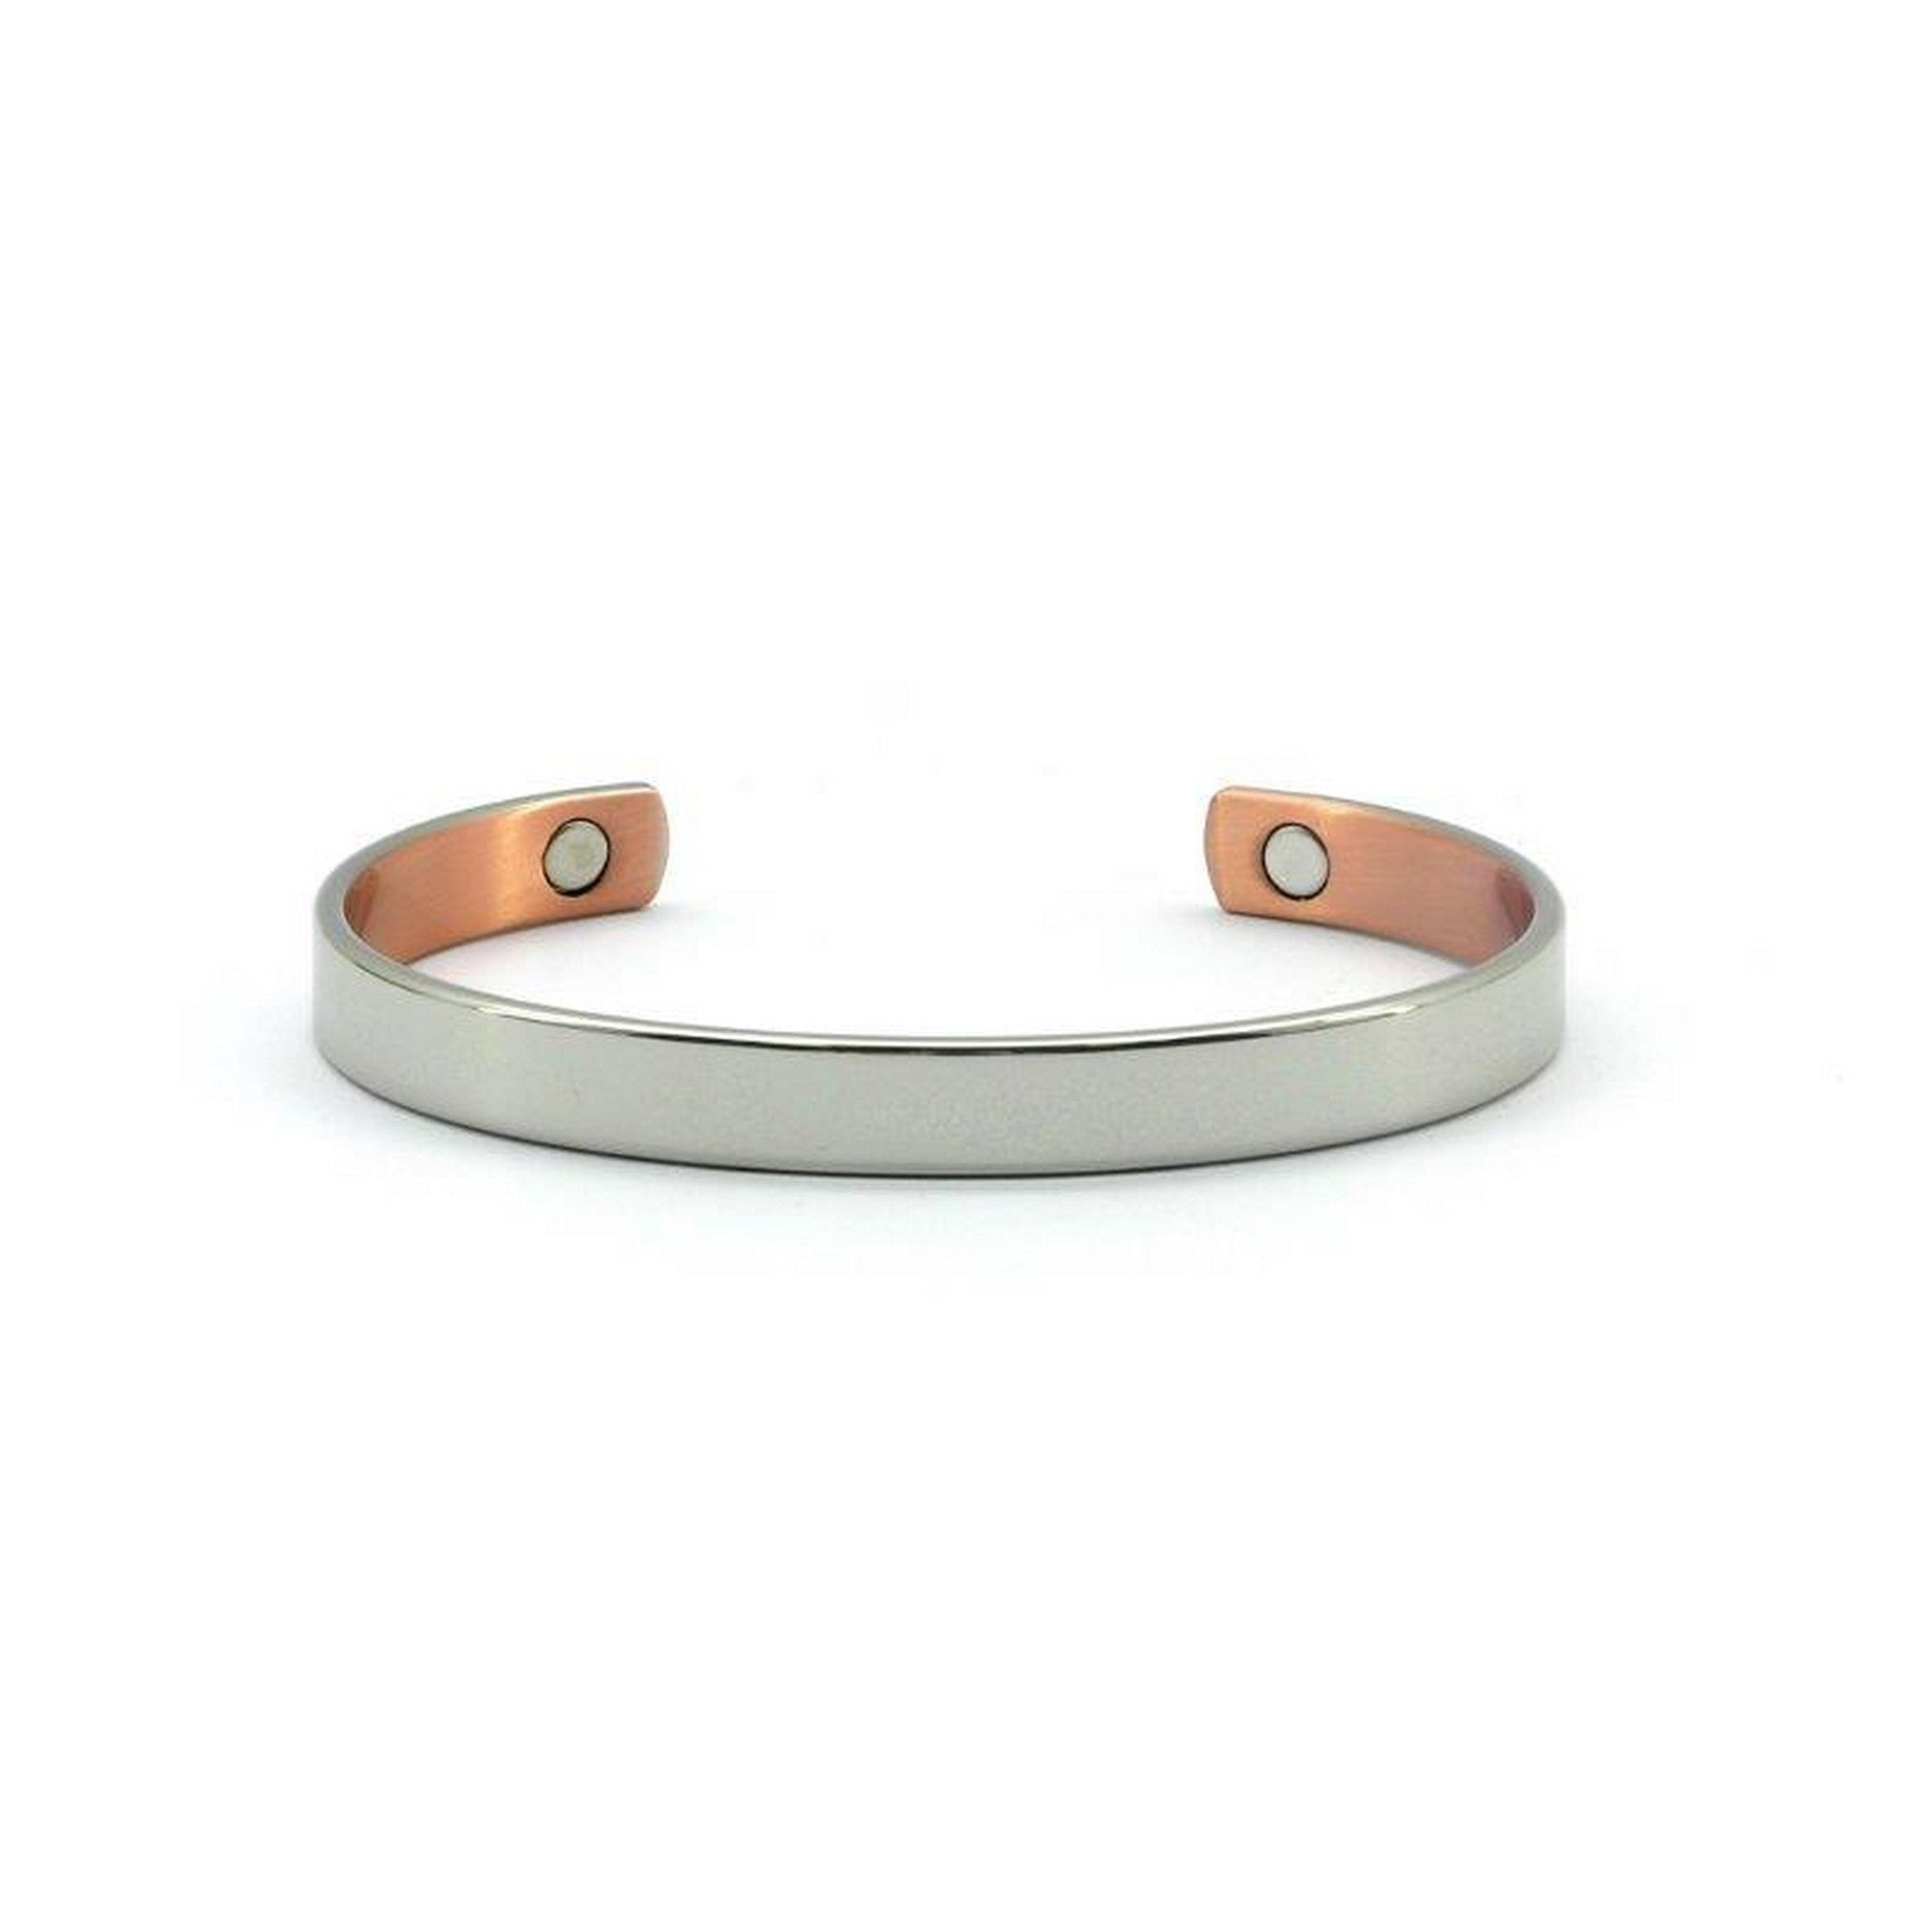 Magnetic Copper High Polished Silver Colour Health Bangle, 2 Magnets, 1800 Gauss